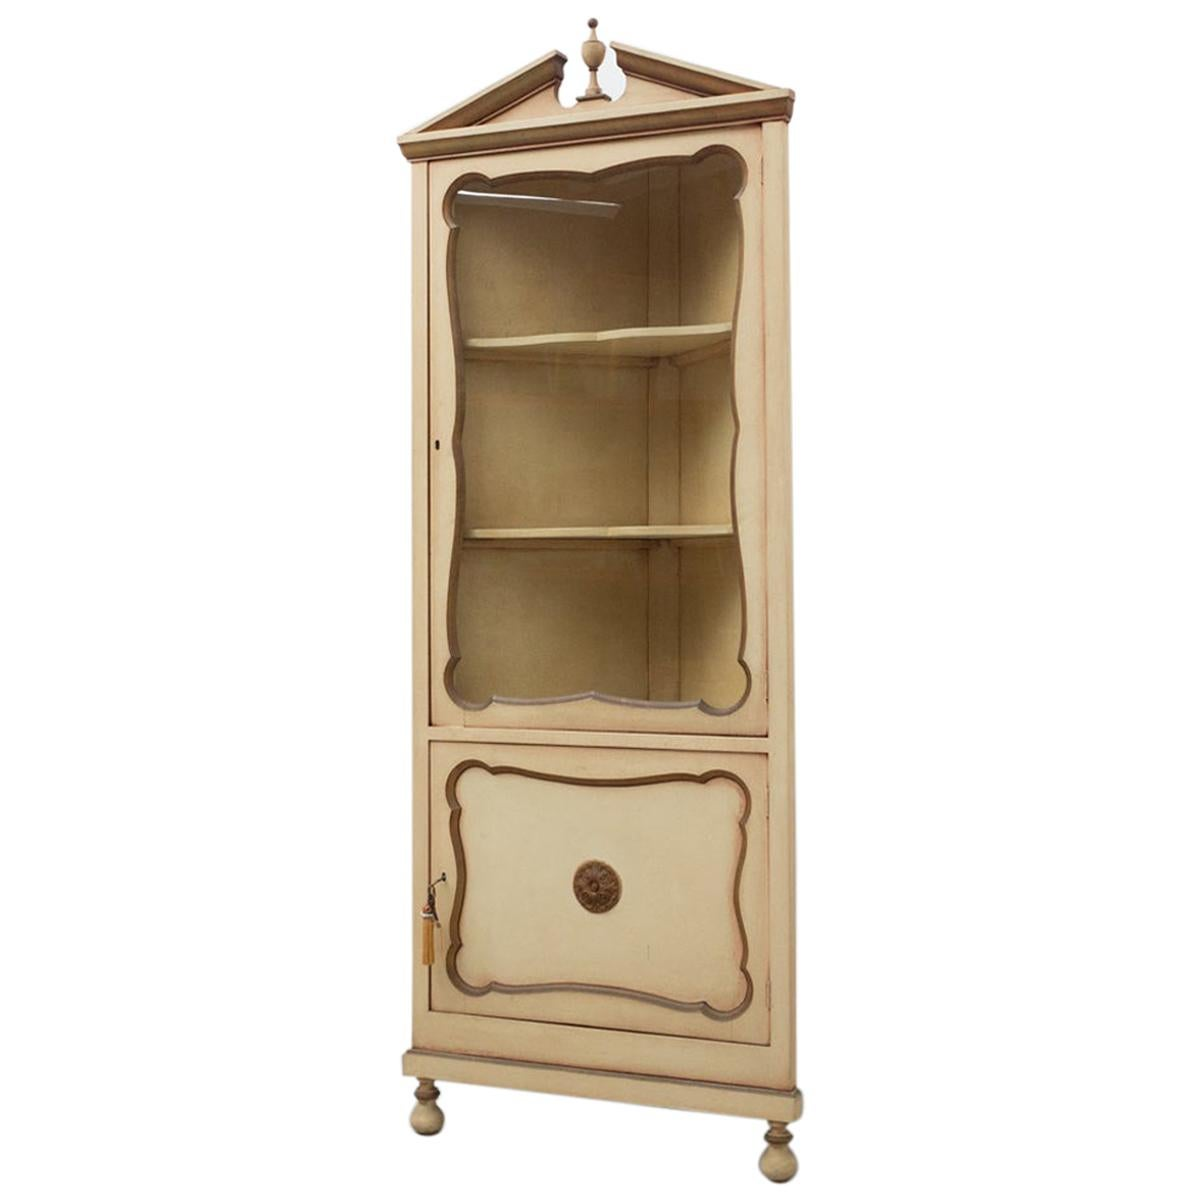 Early 20th Century French Provincial Corner Display Cabinet in Wood